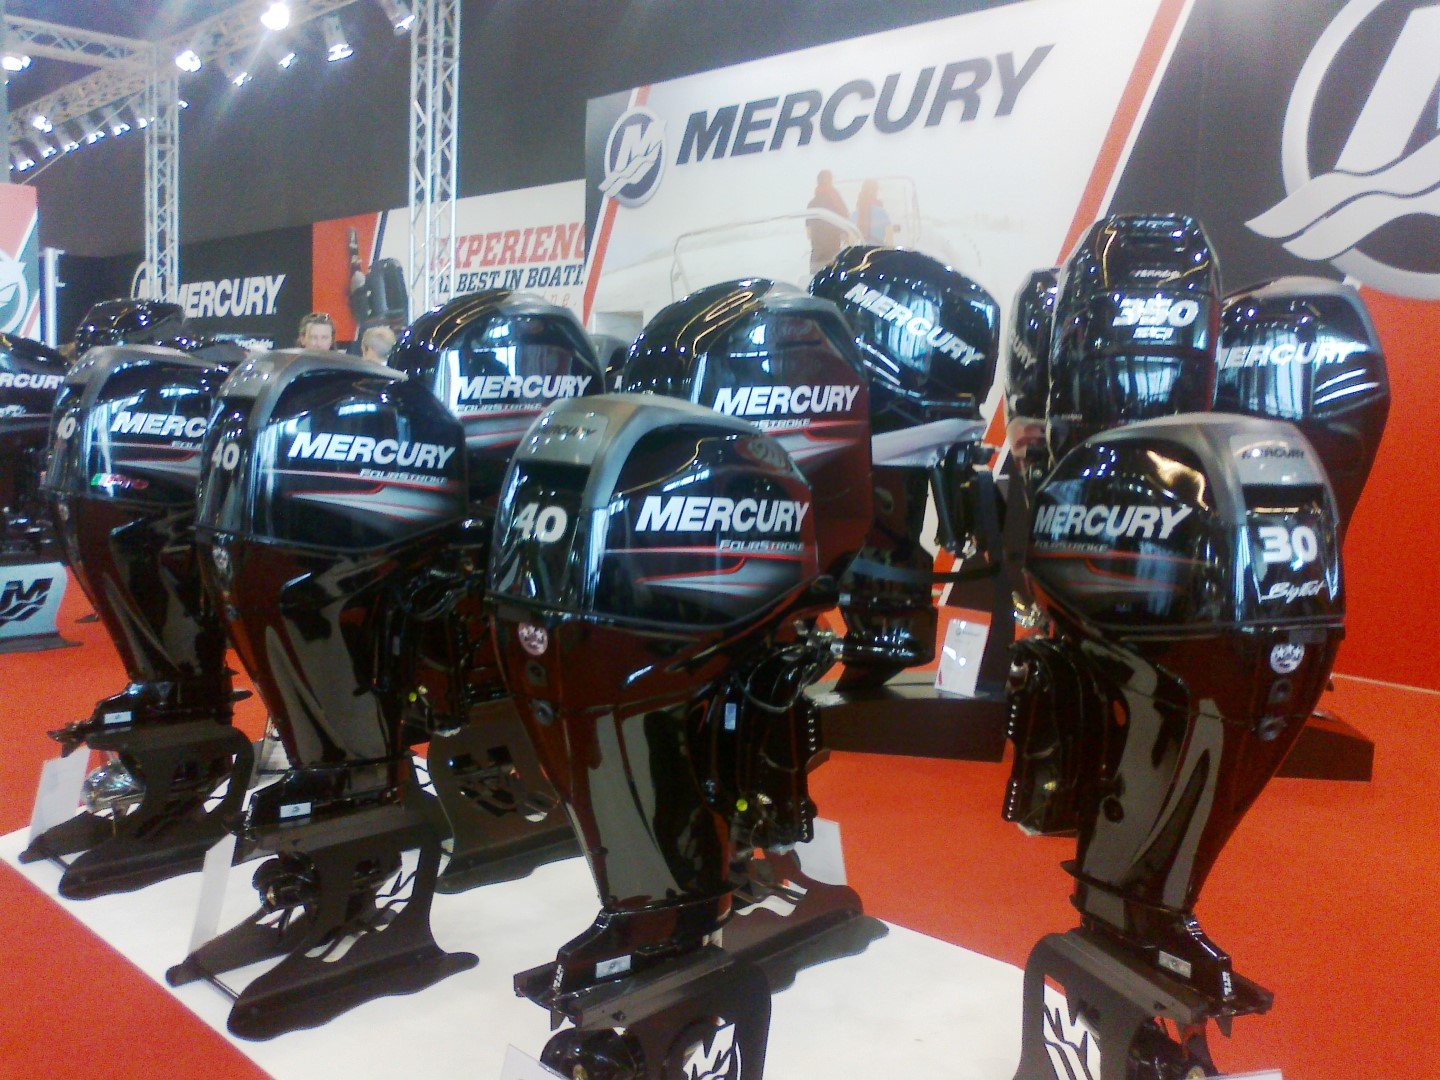 Mercury Outboard Dealers >> Welcome To The Largest Marine Centre In Malta Mecca Marine